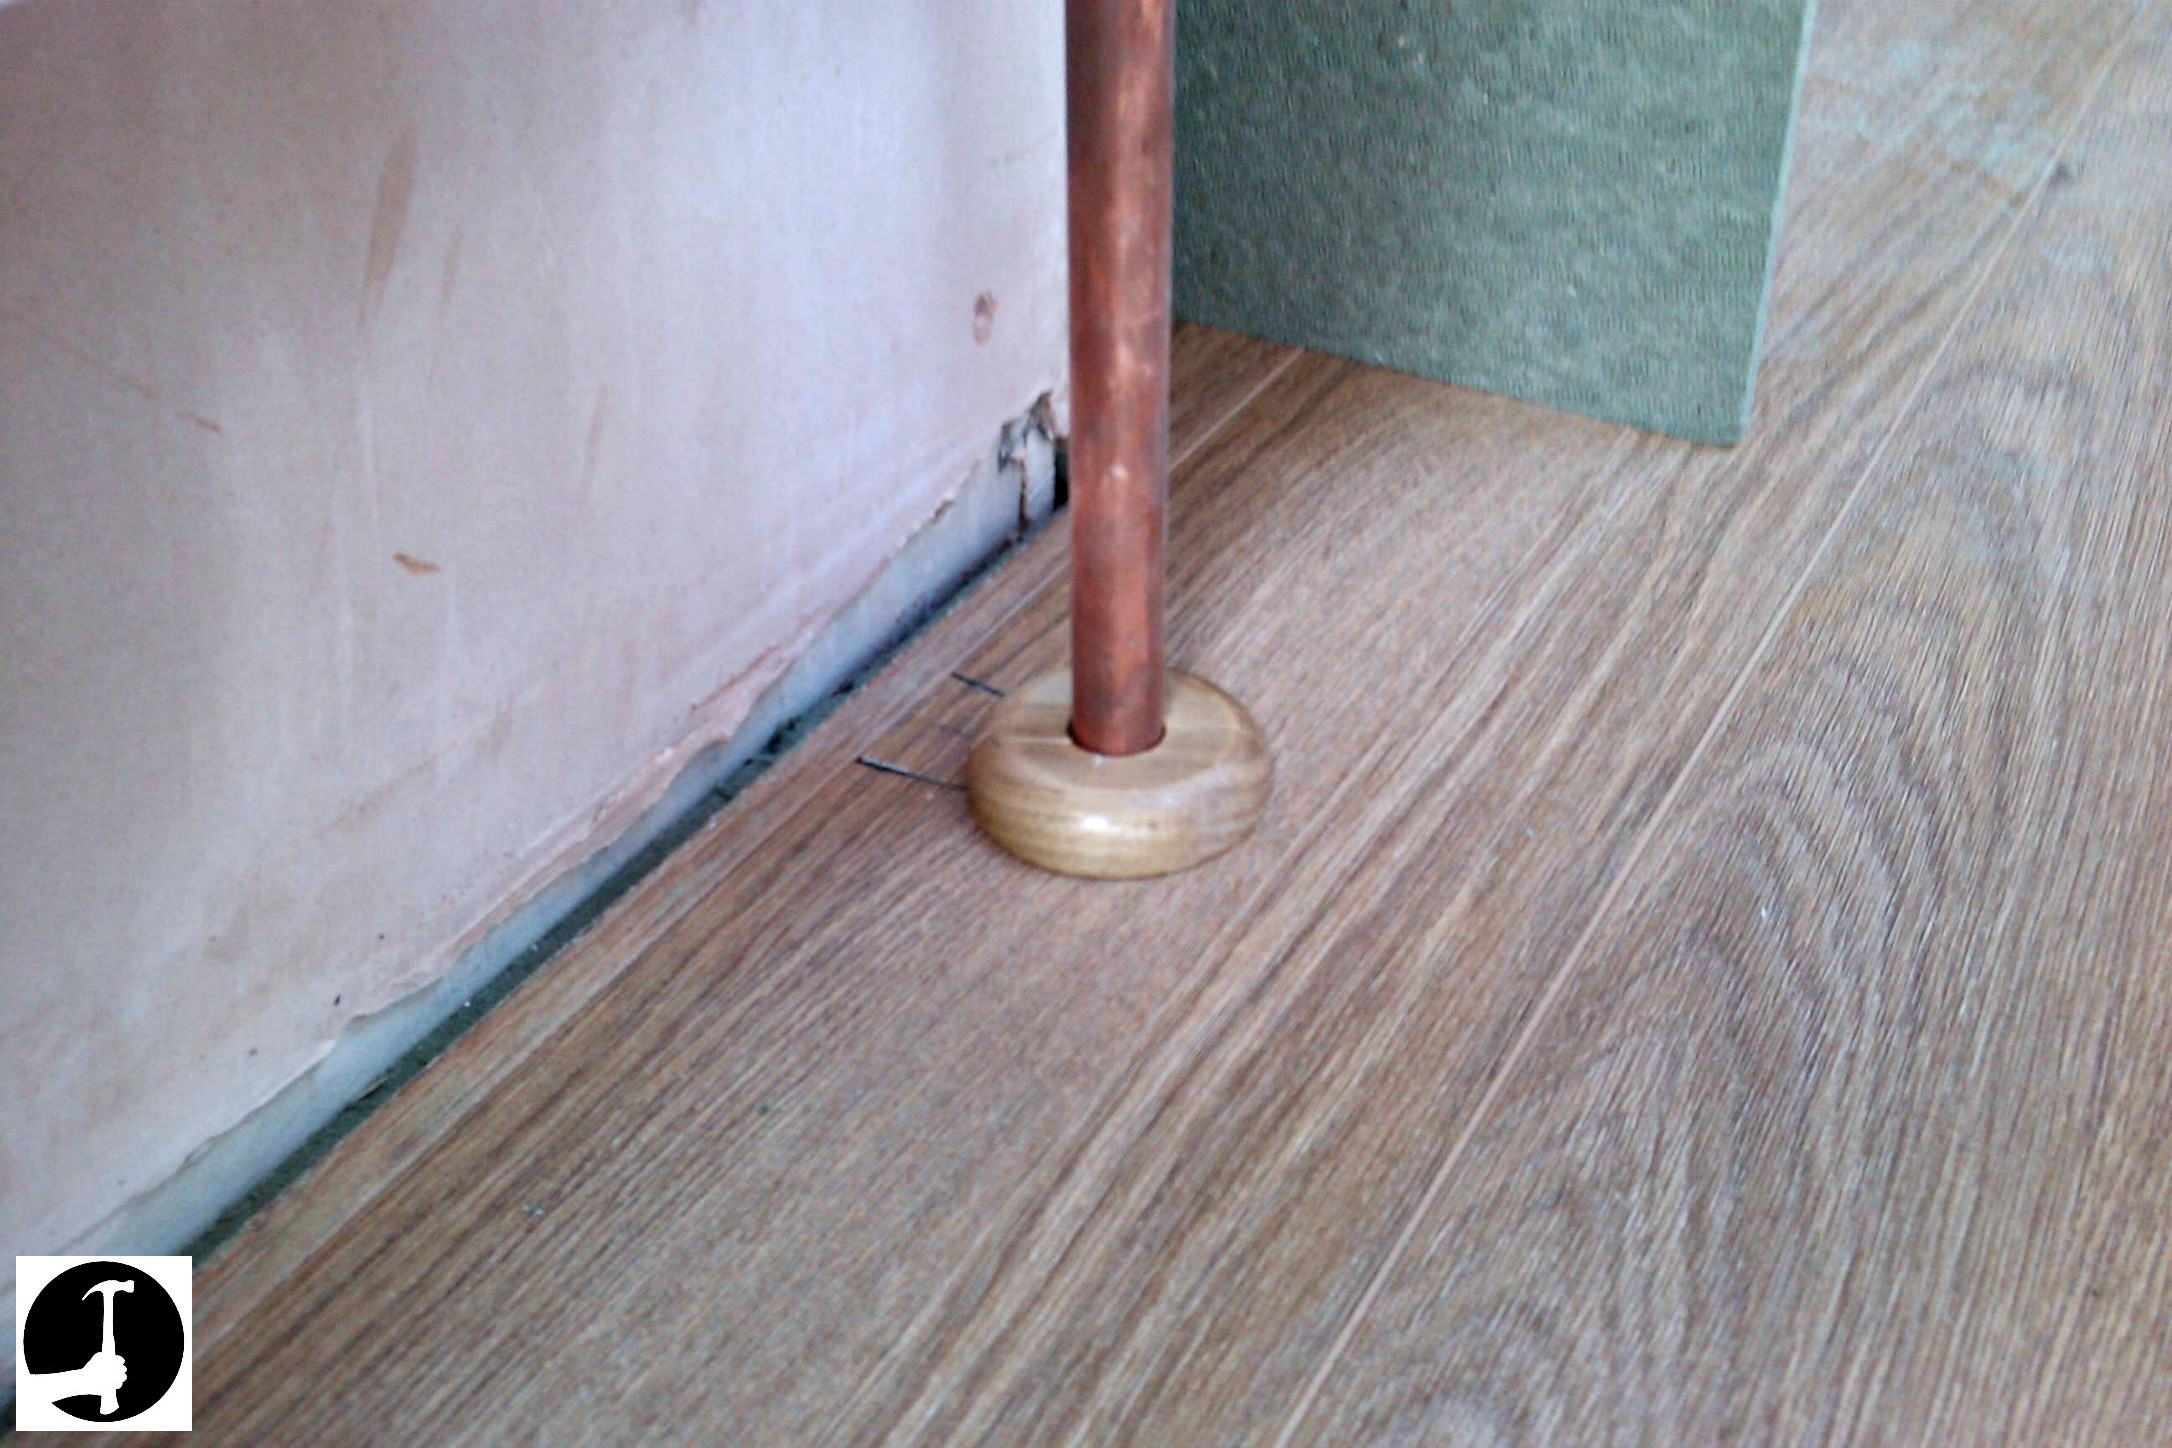 Hardwood Parquet Flooring Uk Of How to Install Laminate Flooring with Ease Glued Glue Less Systems In How to Cut Laminate Around Pipes